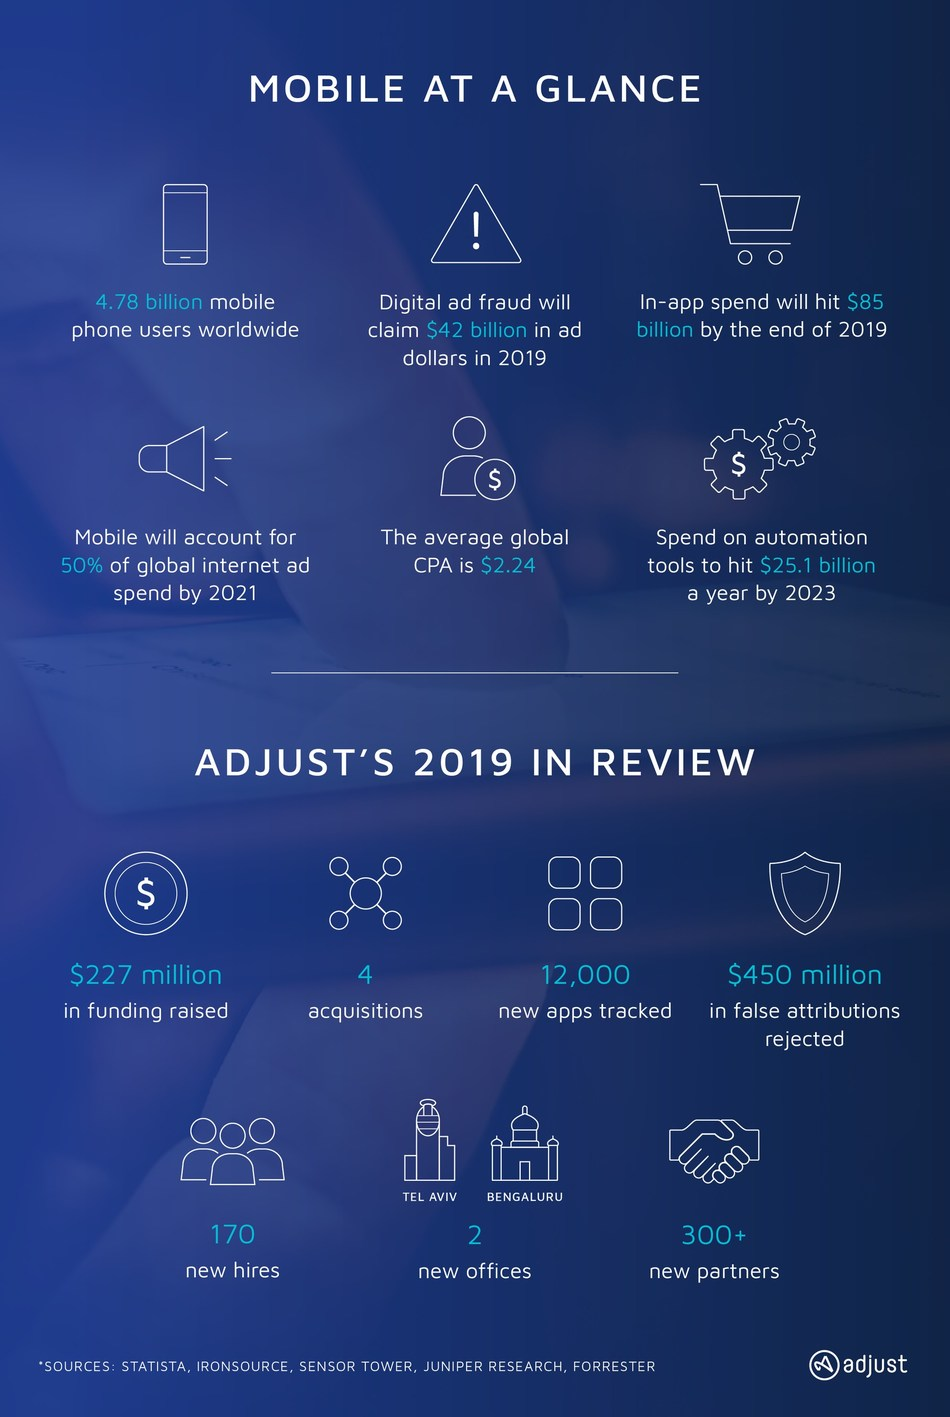 Adjust's 2019 in review infographic (PRNewsfoto/Adjust GmbH)